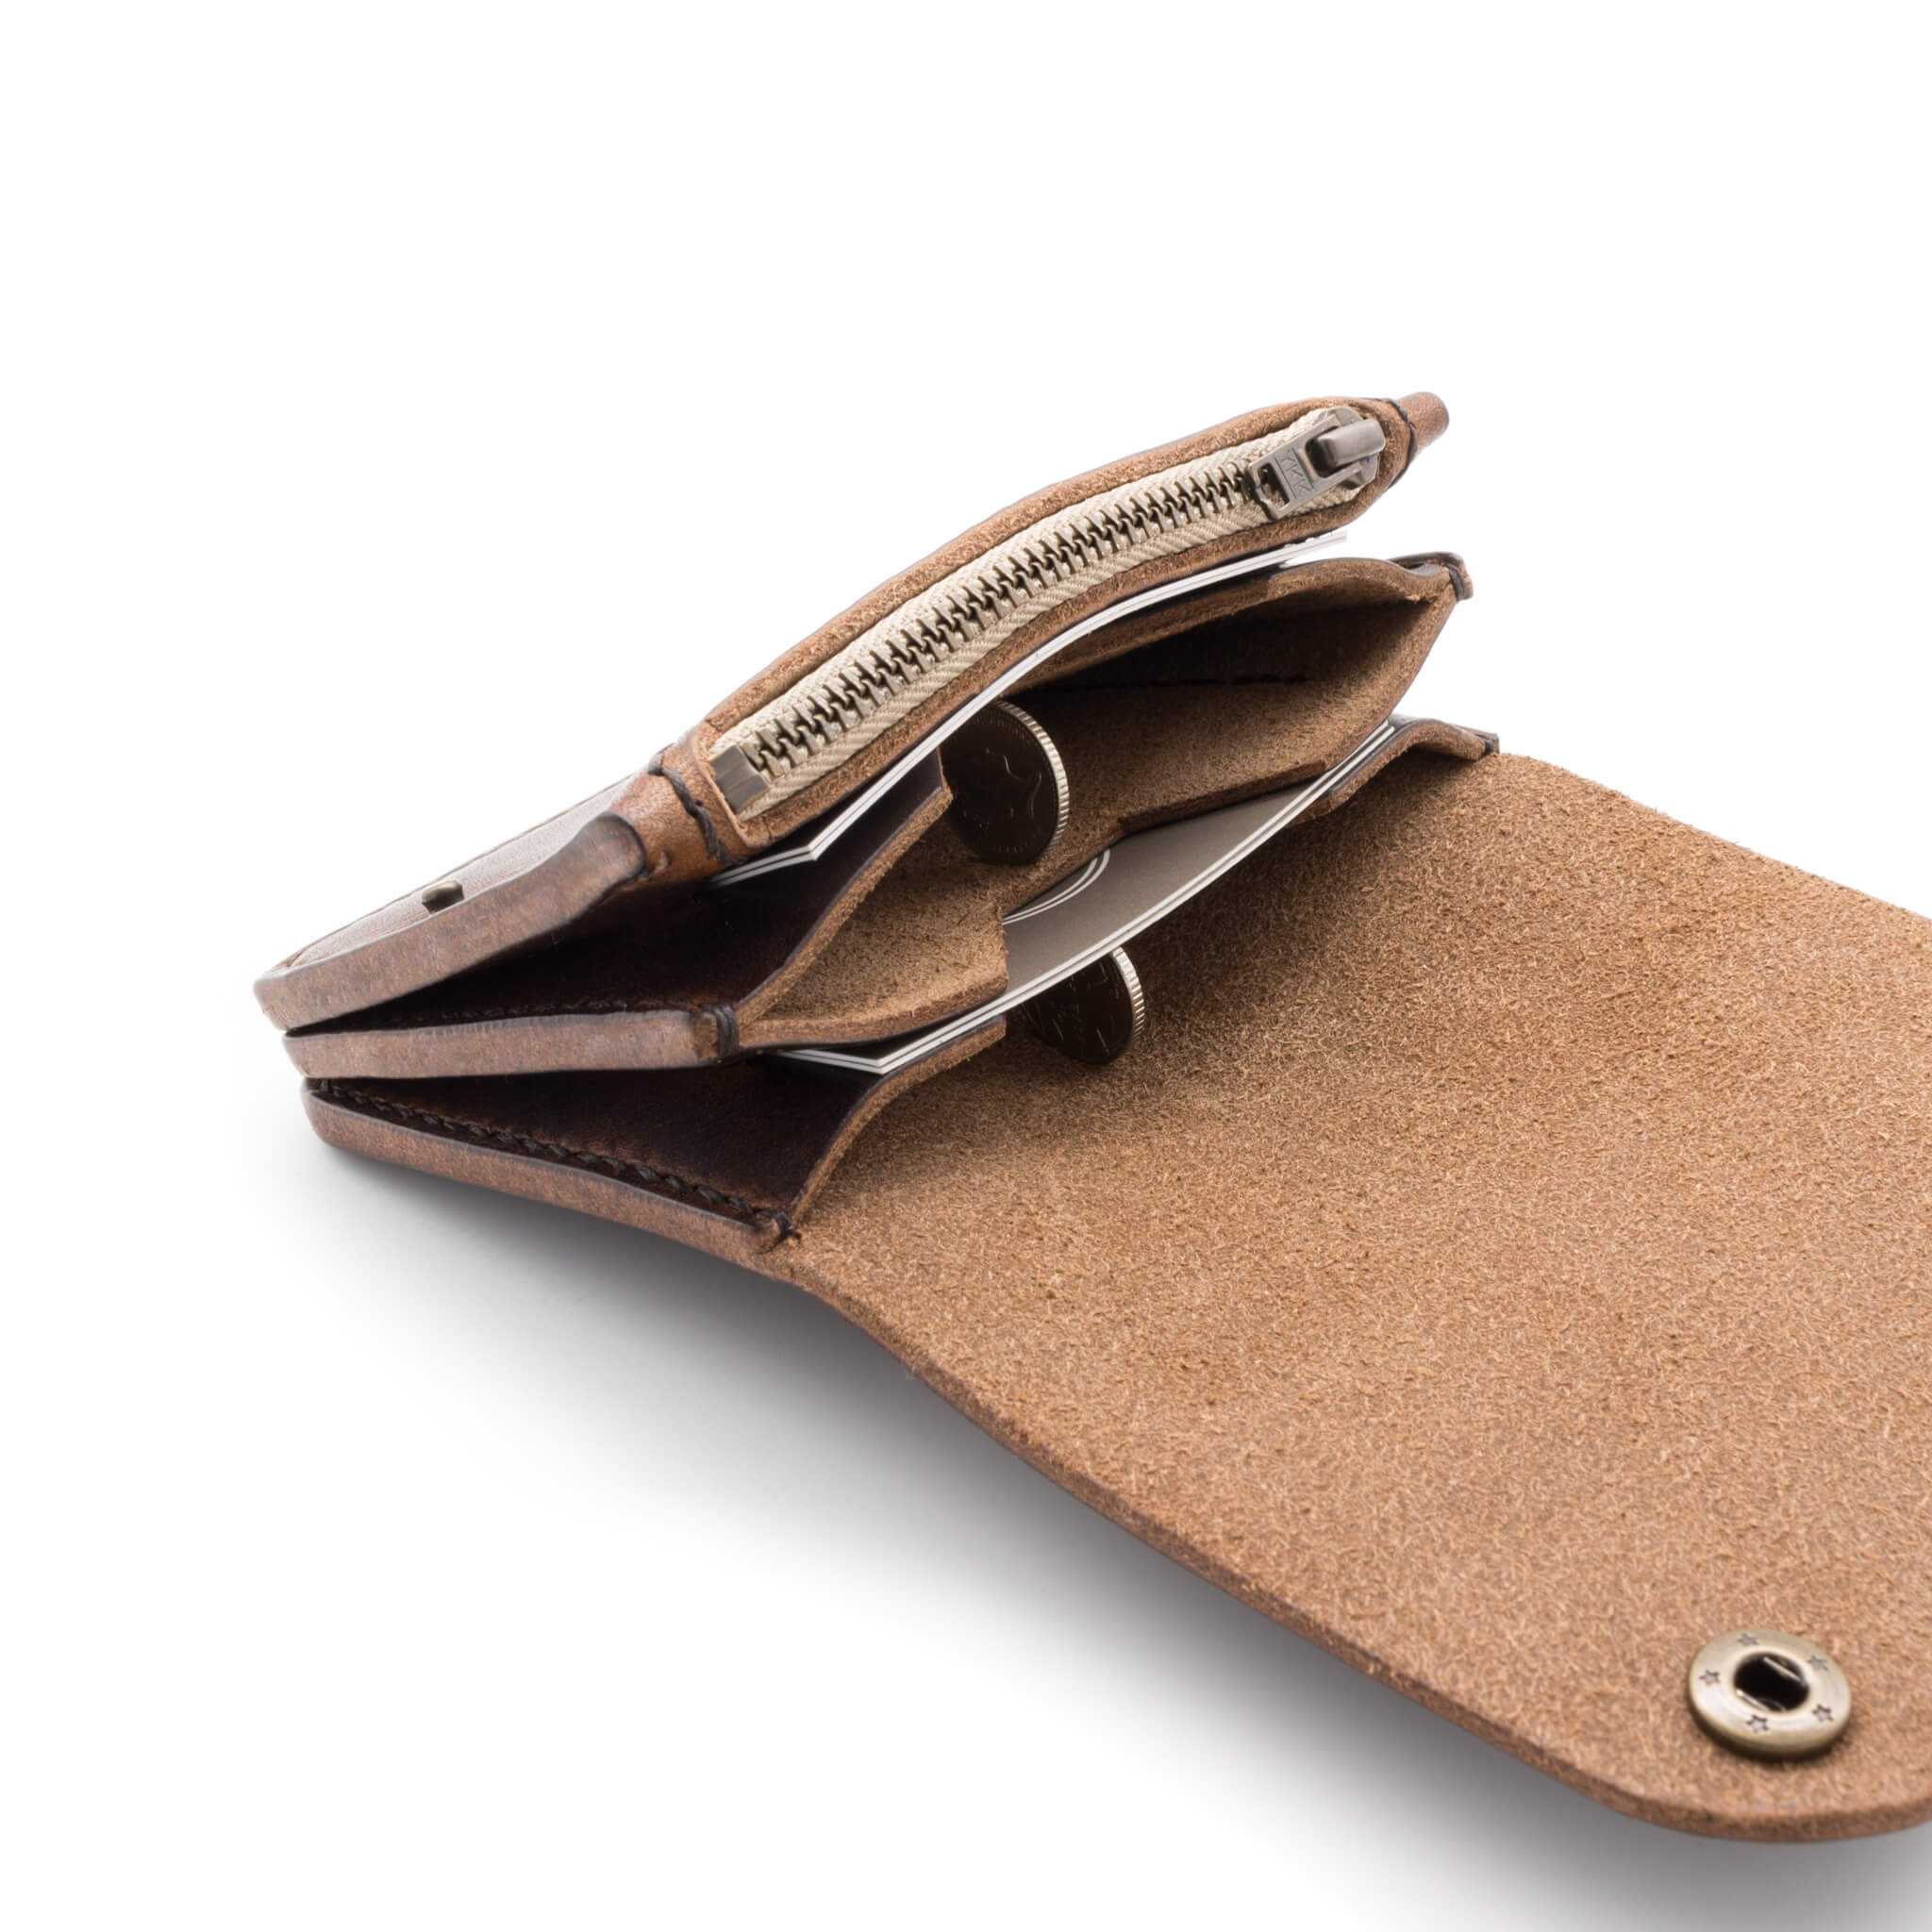 Inside leather wallet, zip coin pocket and card slots